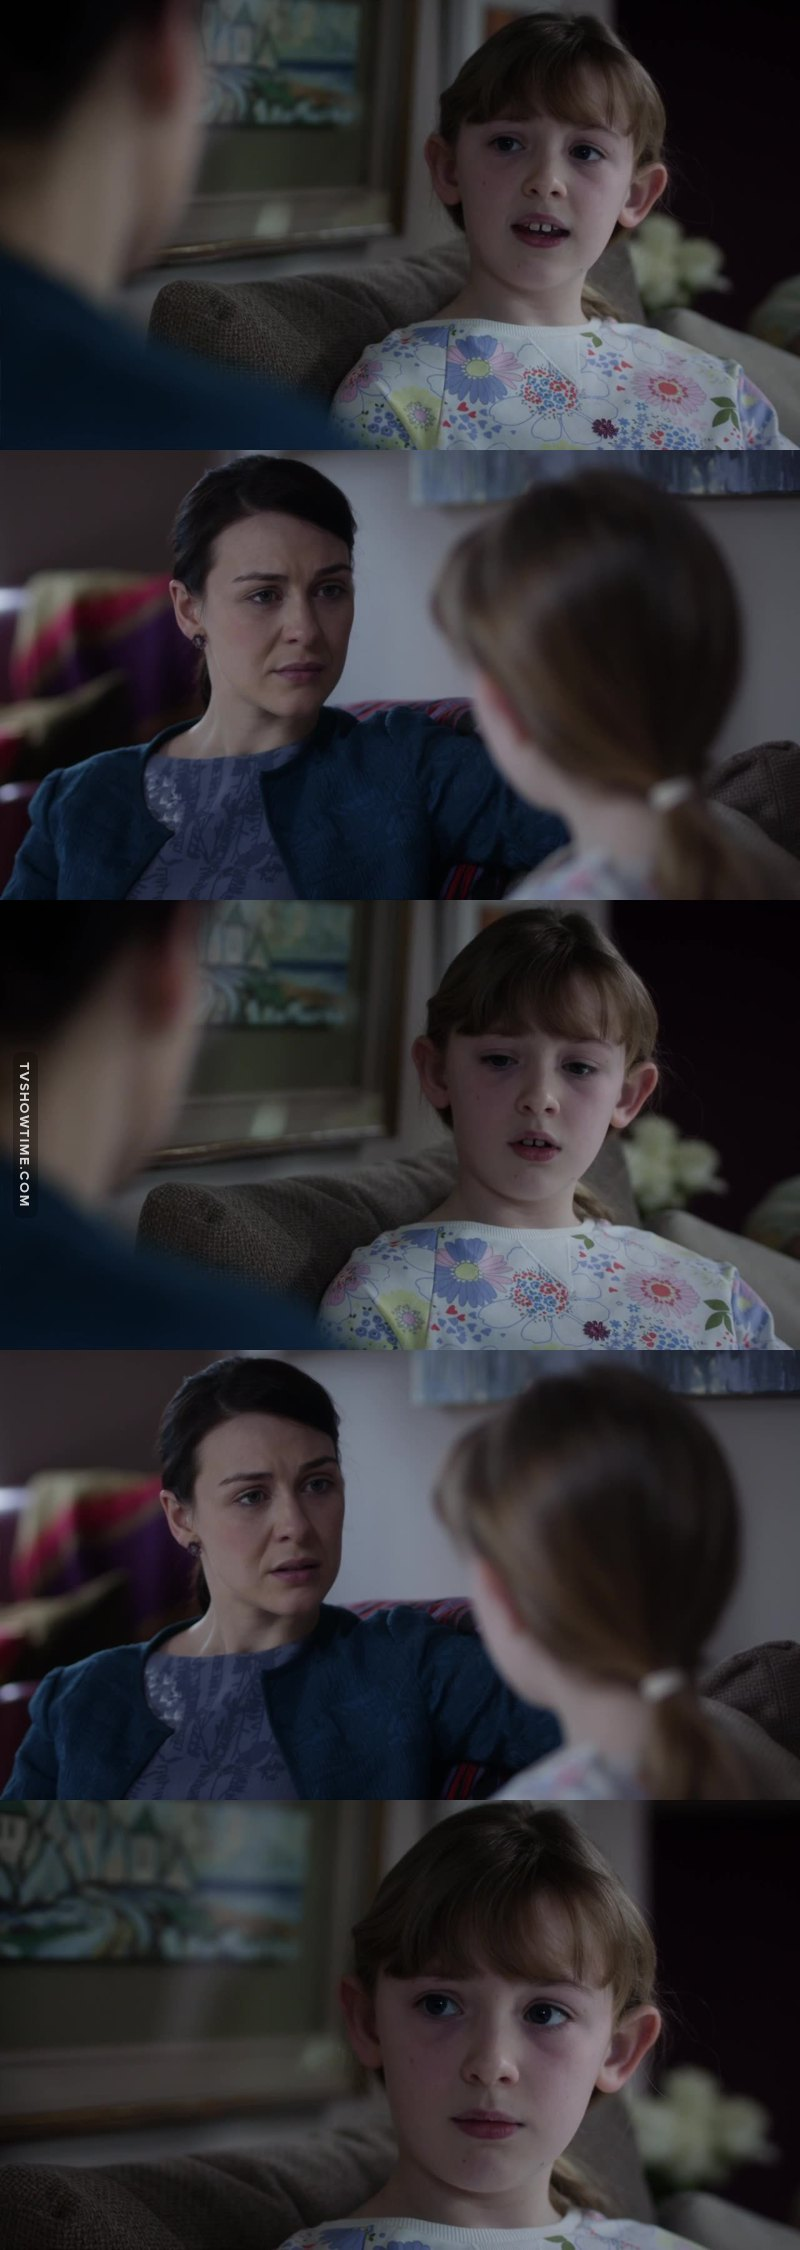 - How do you feel about your daddy right now, Olivia?  - I love him. - But? - I don't think I'll go see him for a while. - How long do you think before you'll see him again?  - When I'm grown up I might. Or if I have a baby. If I have a baby, I might go take her to see him 💔❤️